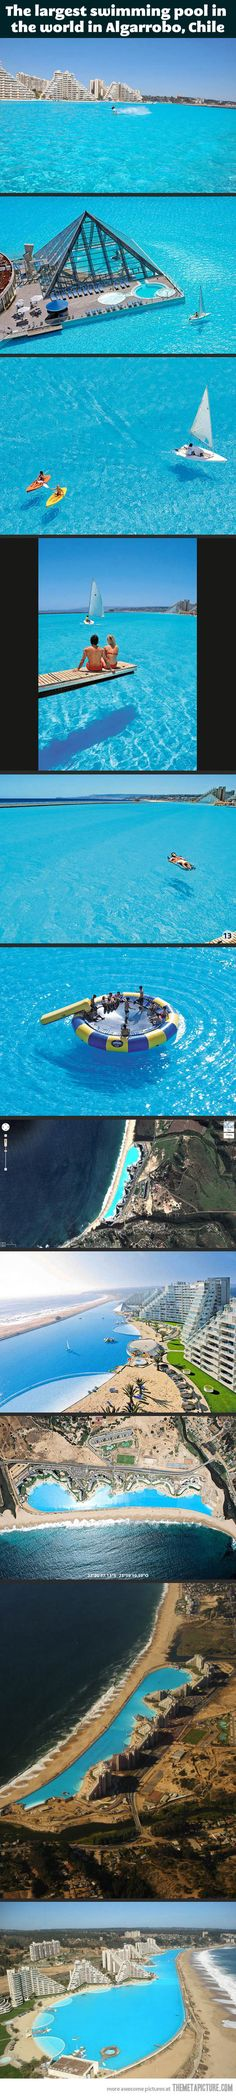 The largest swimming pool in the world<<< I WANT TO GO HERE SO BADLY!!!